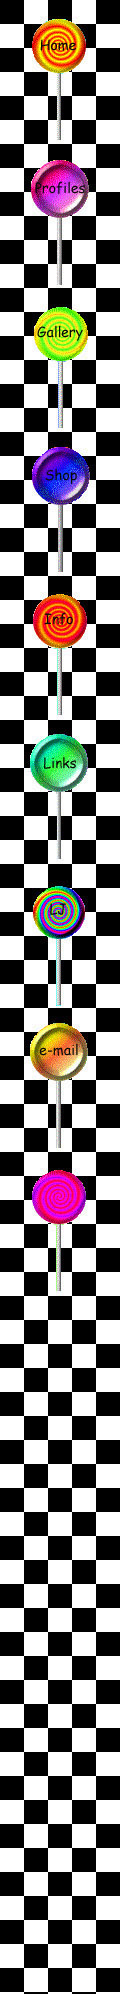 lollypops on checkerboard background